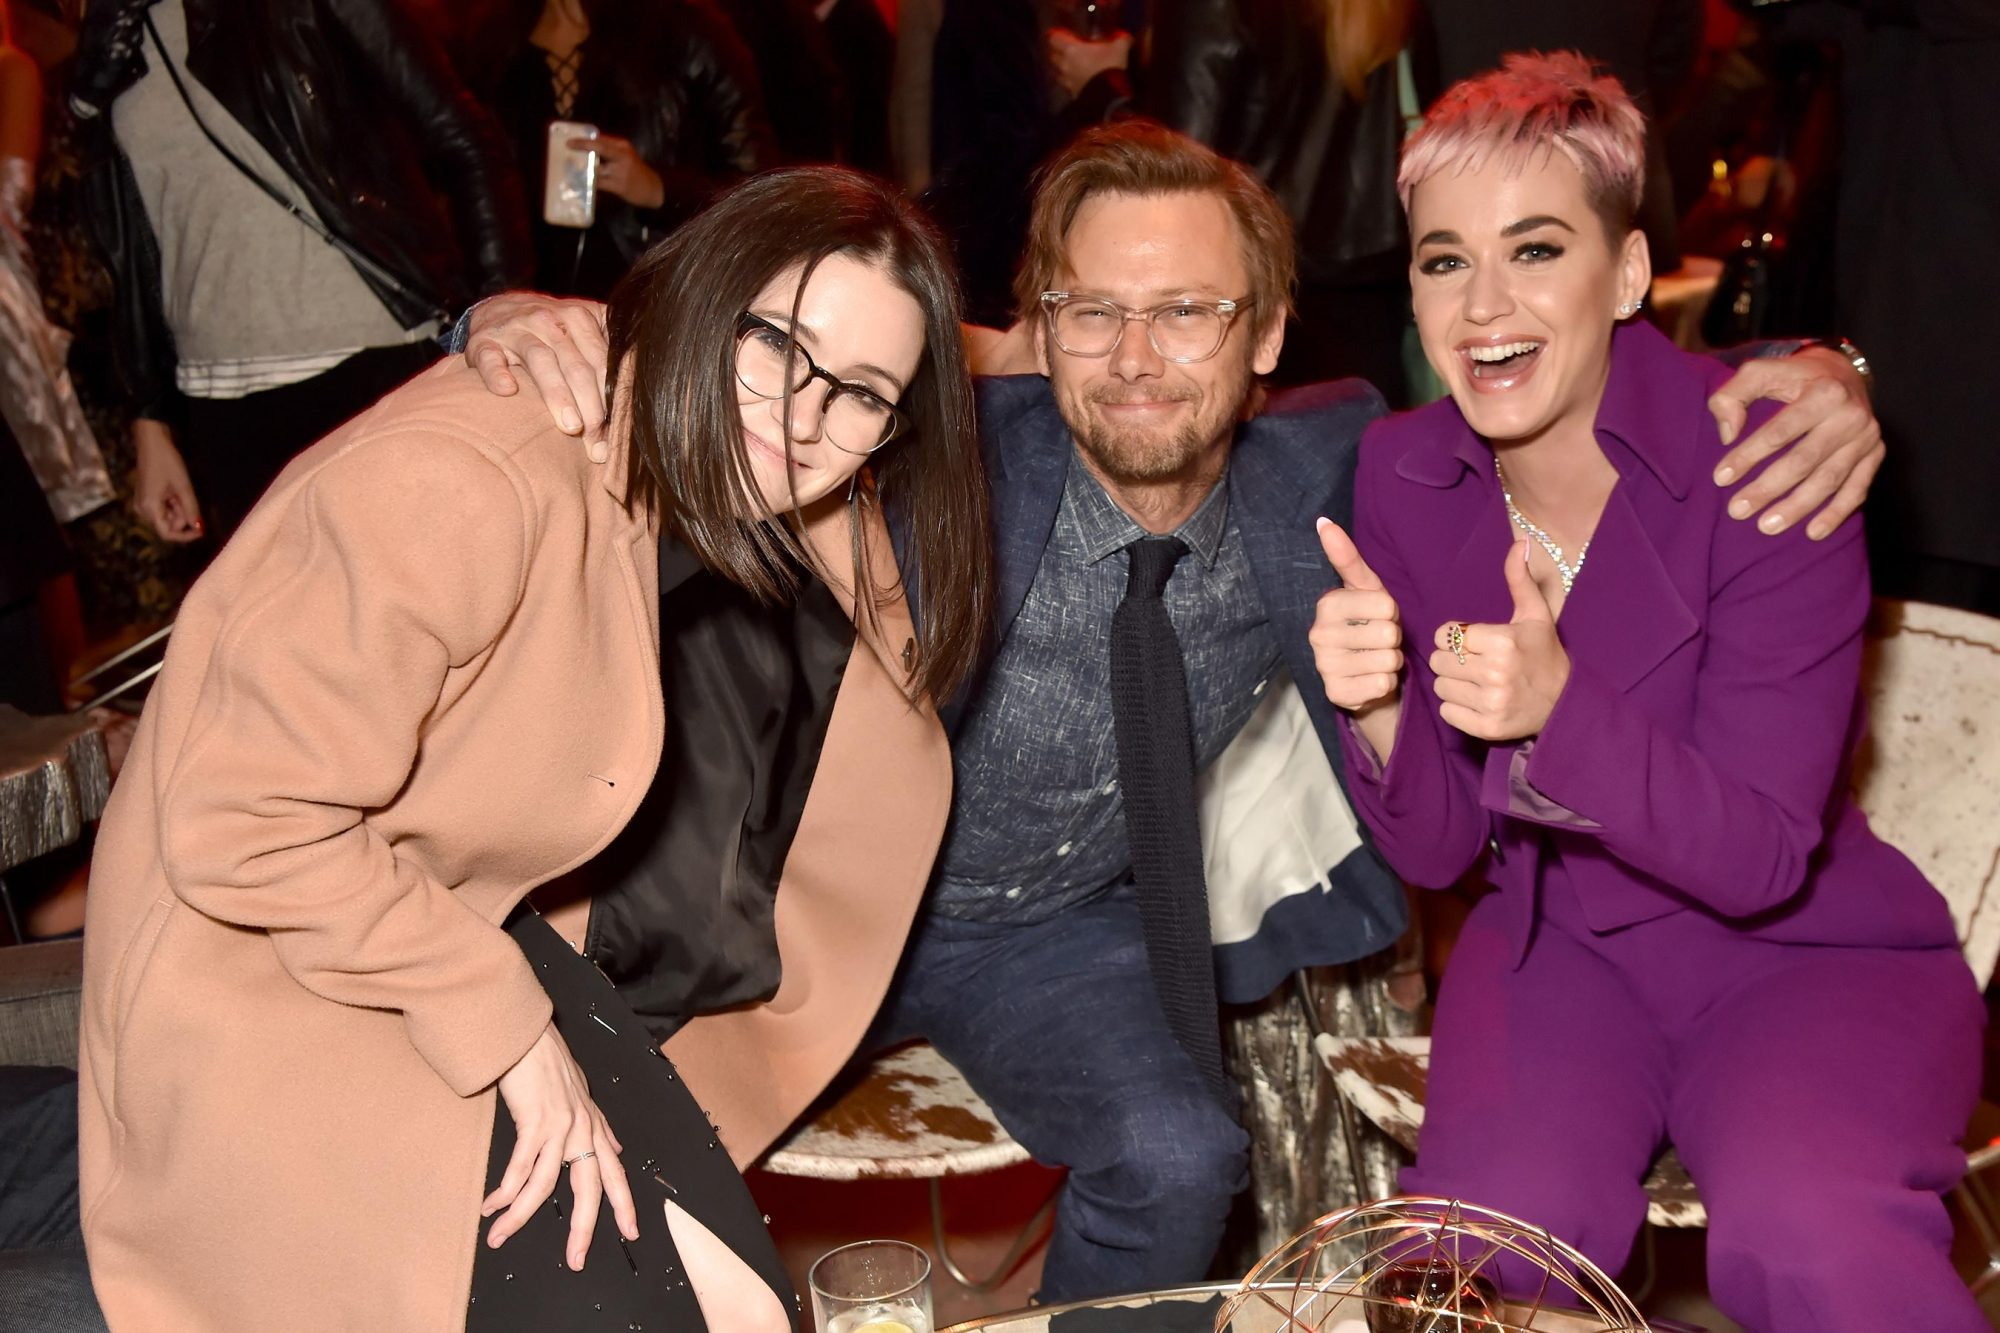 Shannon Woodward, Jimmi Simpson, and Katy Perry